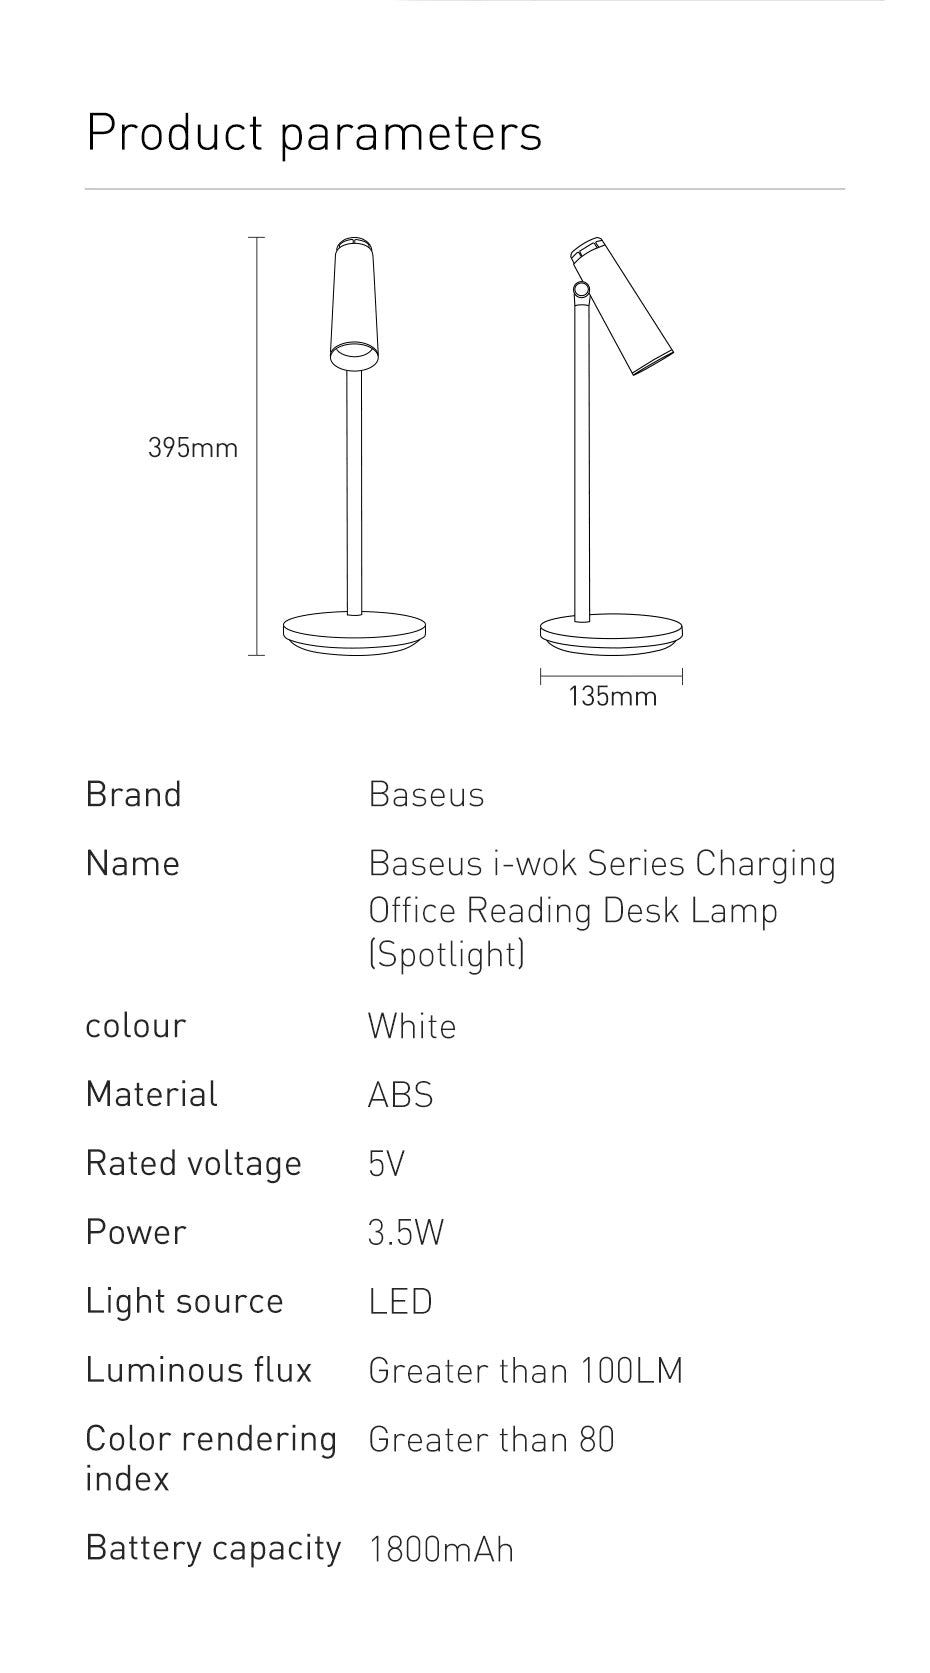 Desk lamp product parameters